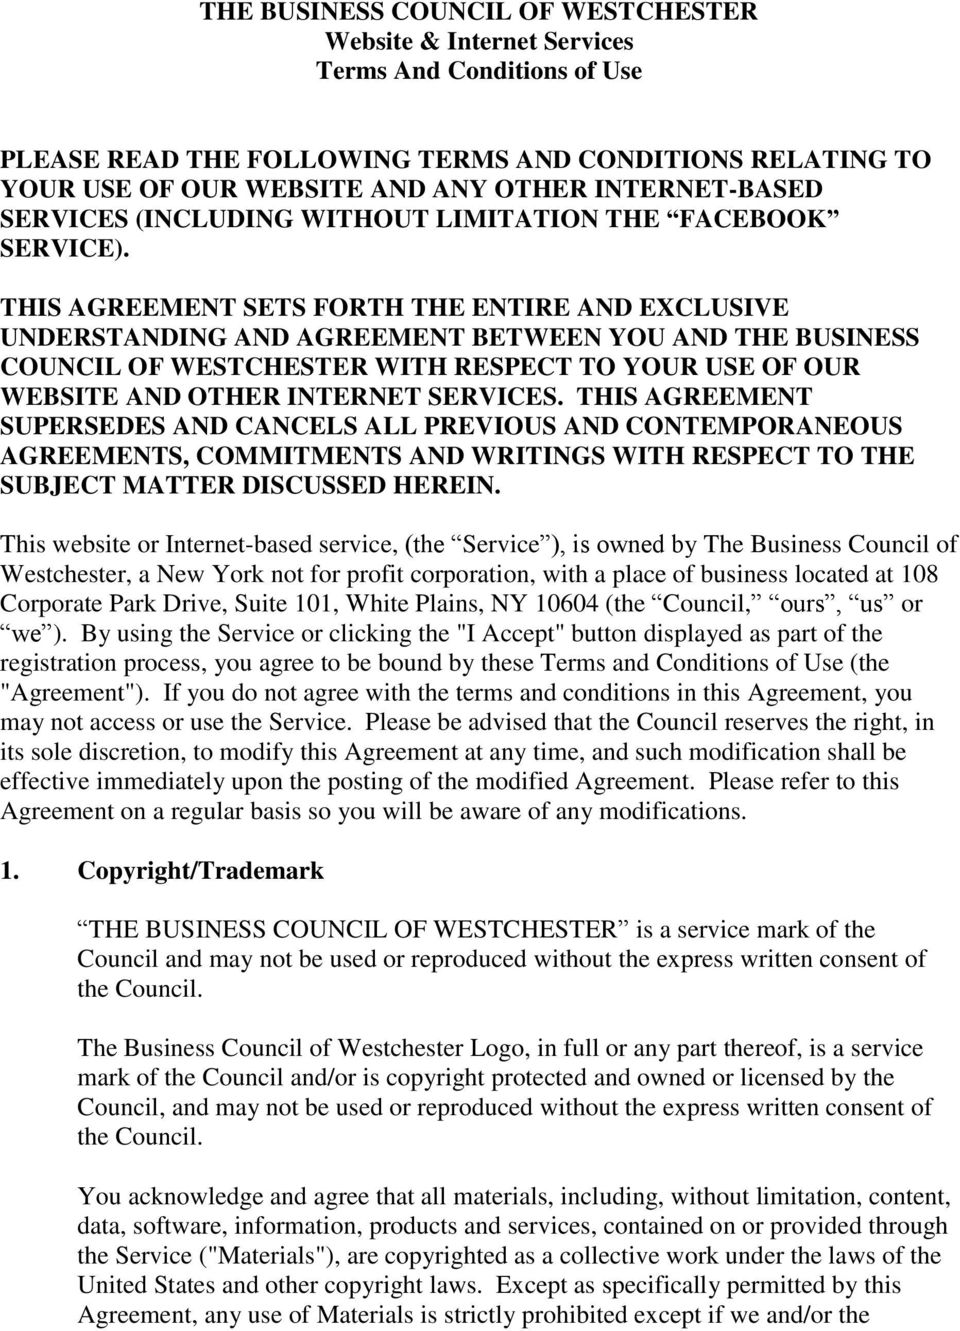 The Business Council Of Westchester Website Internet Services